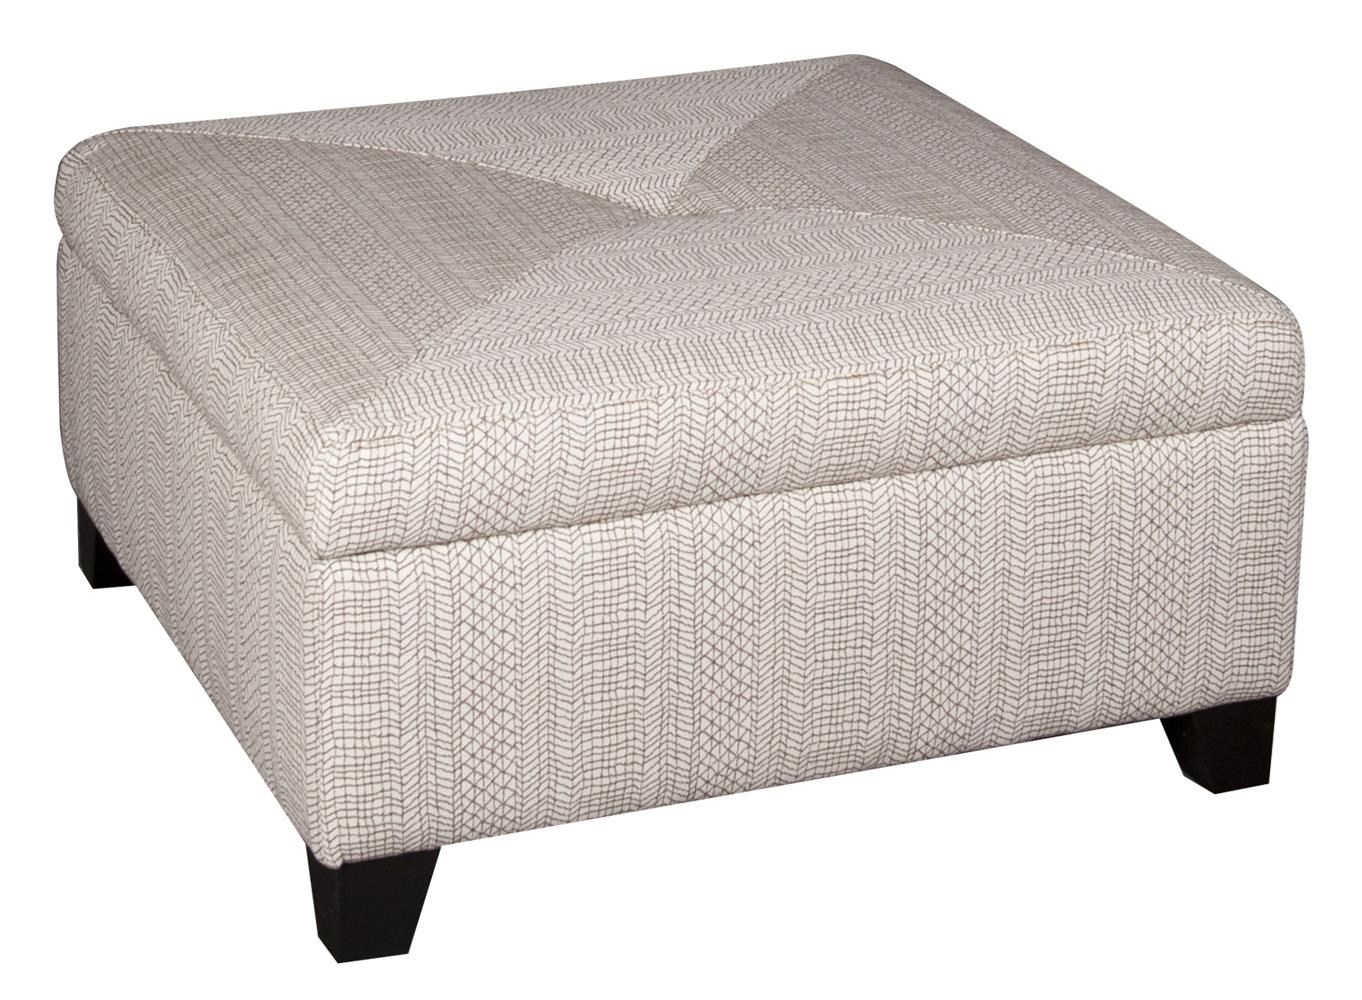 Morris Home Furnishings Lexie Lexie Storage Ottoman - Item Number: 835244989